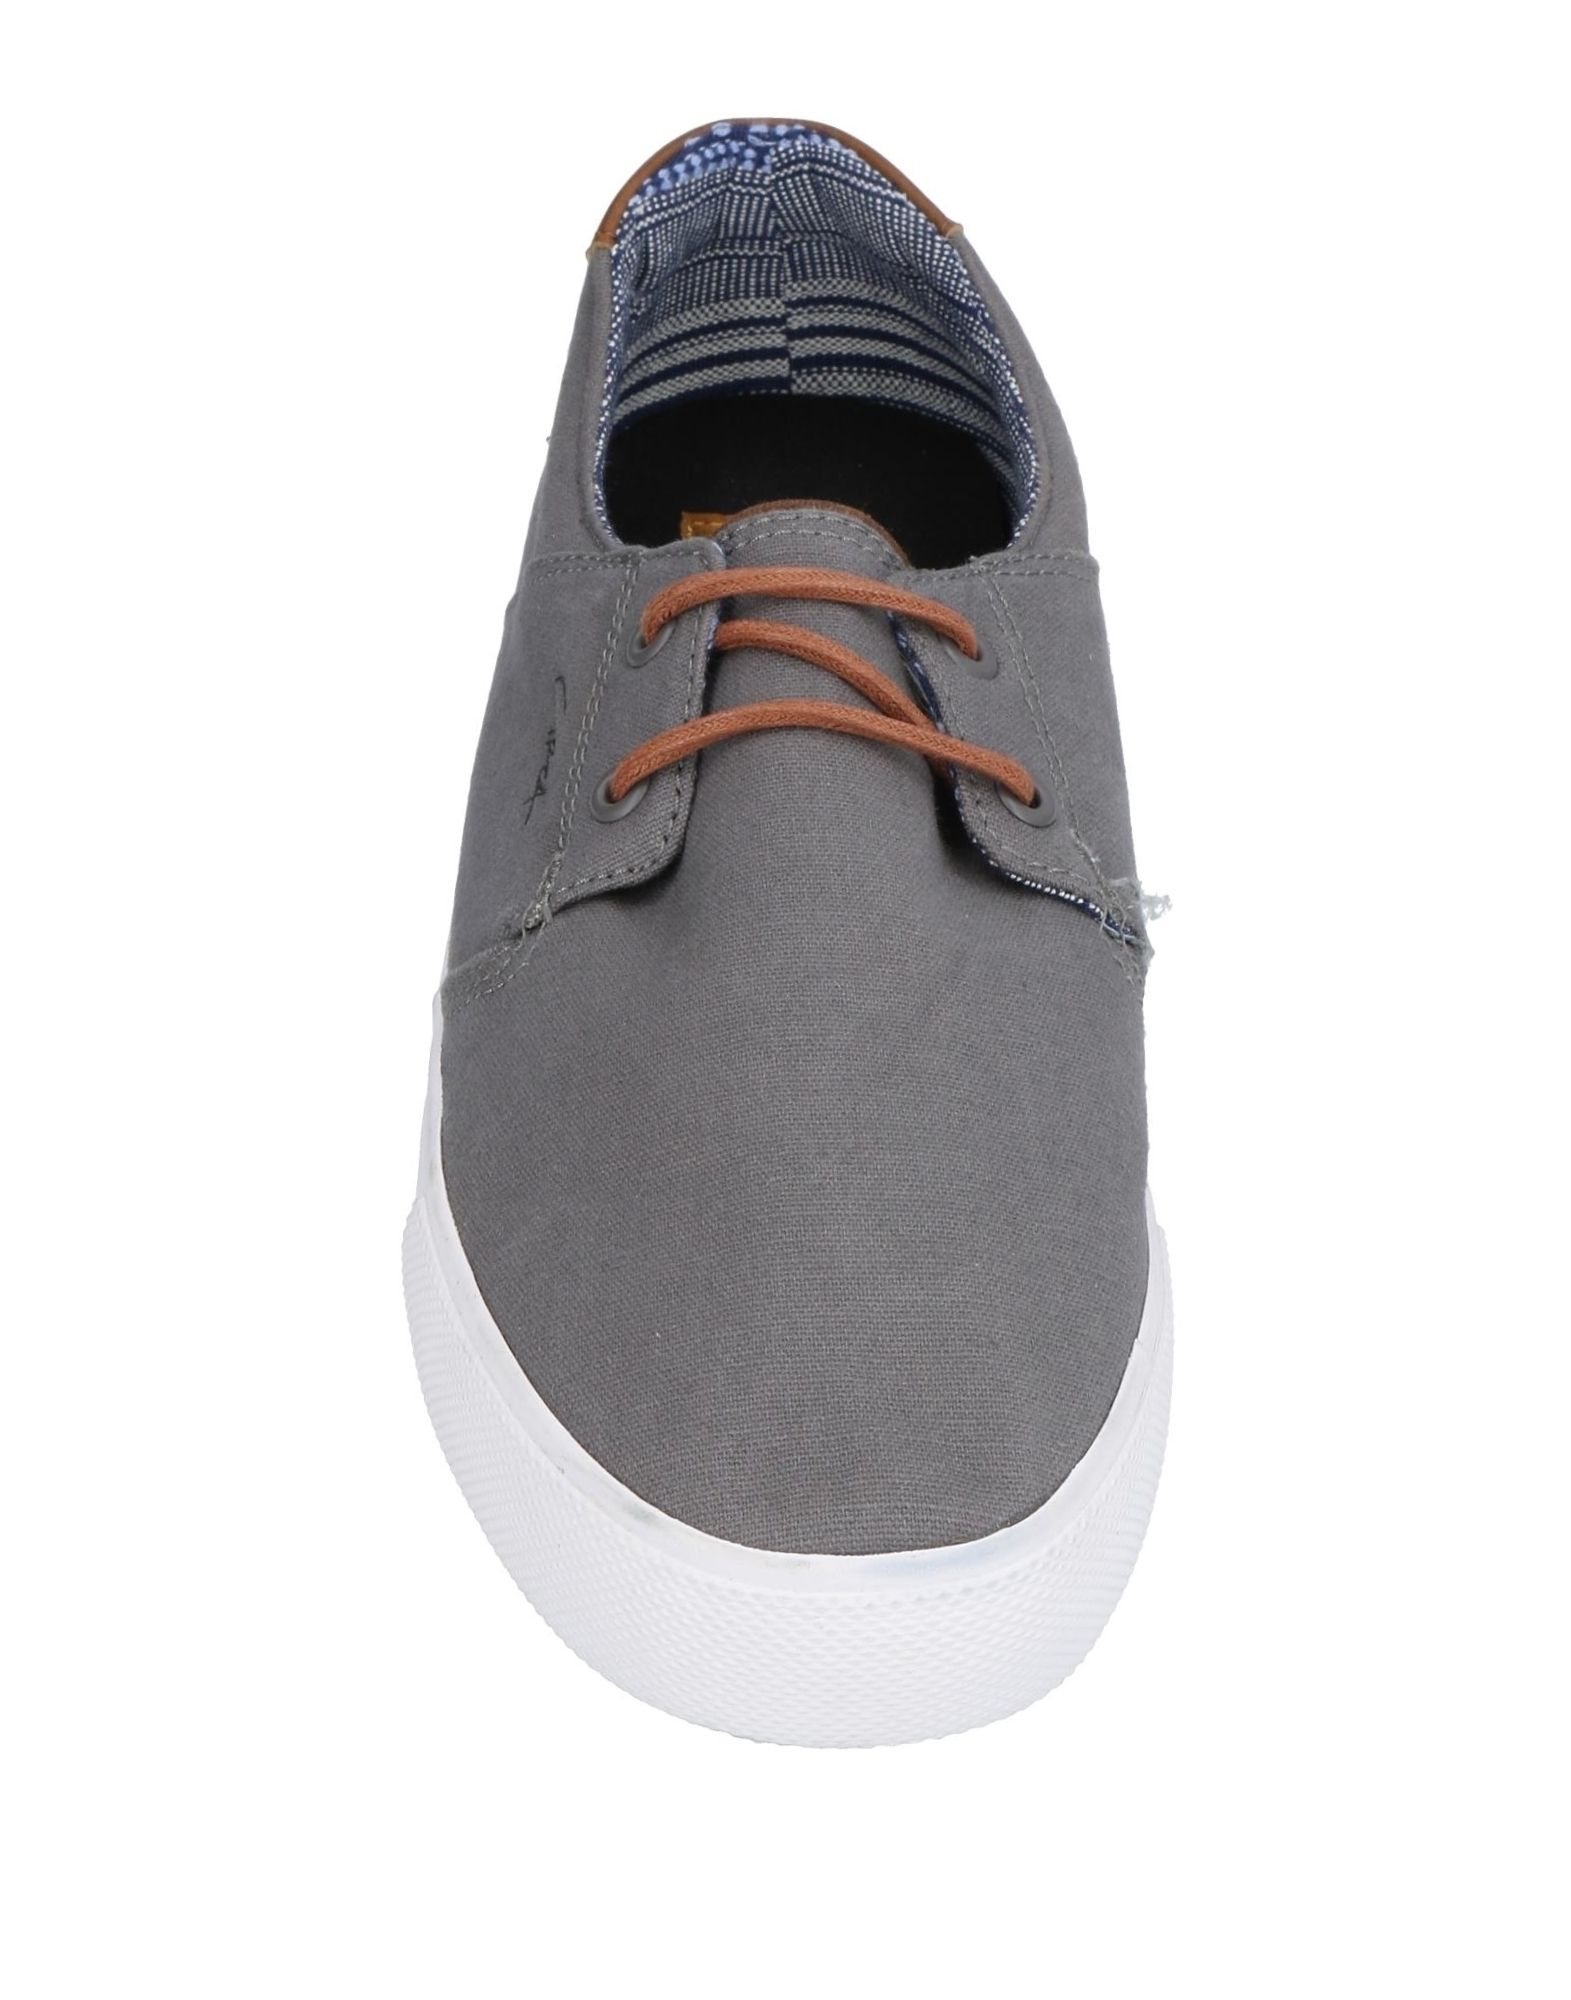 Sneakers C1rca Homme - Sneakers C1rca sur